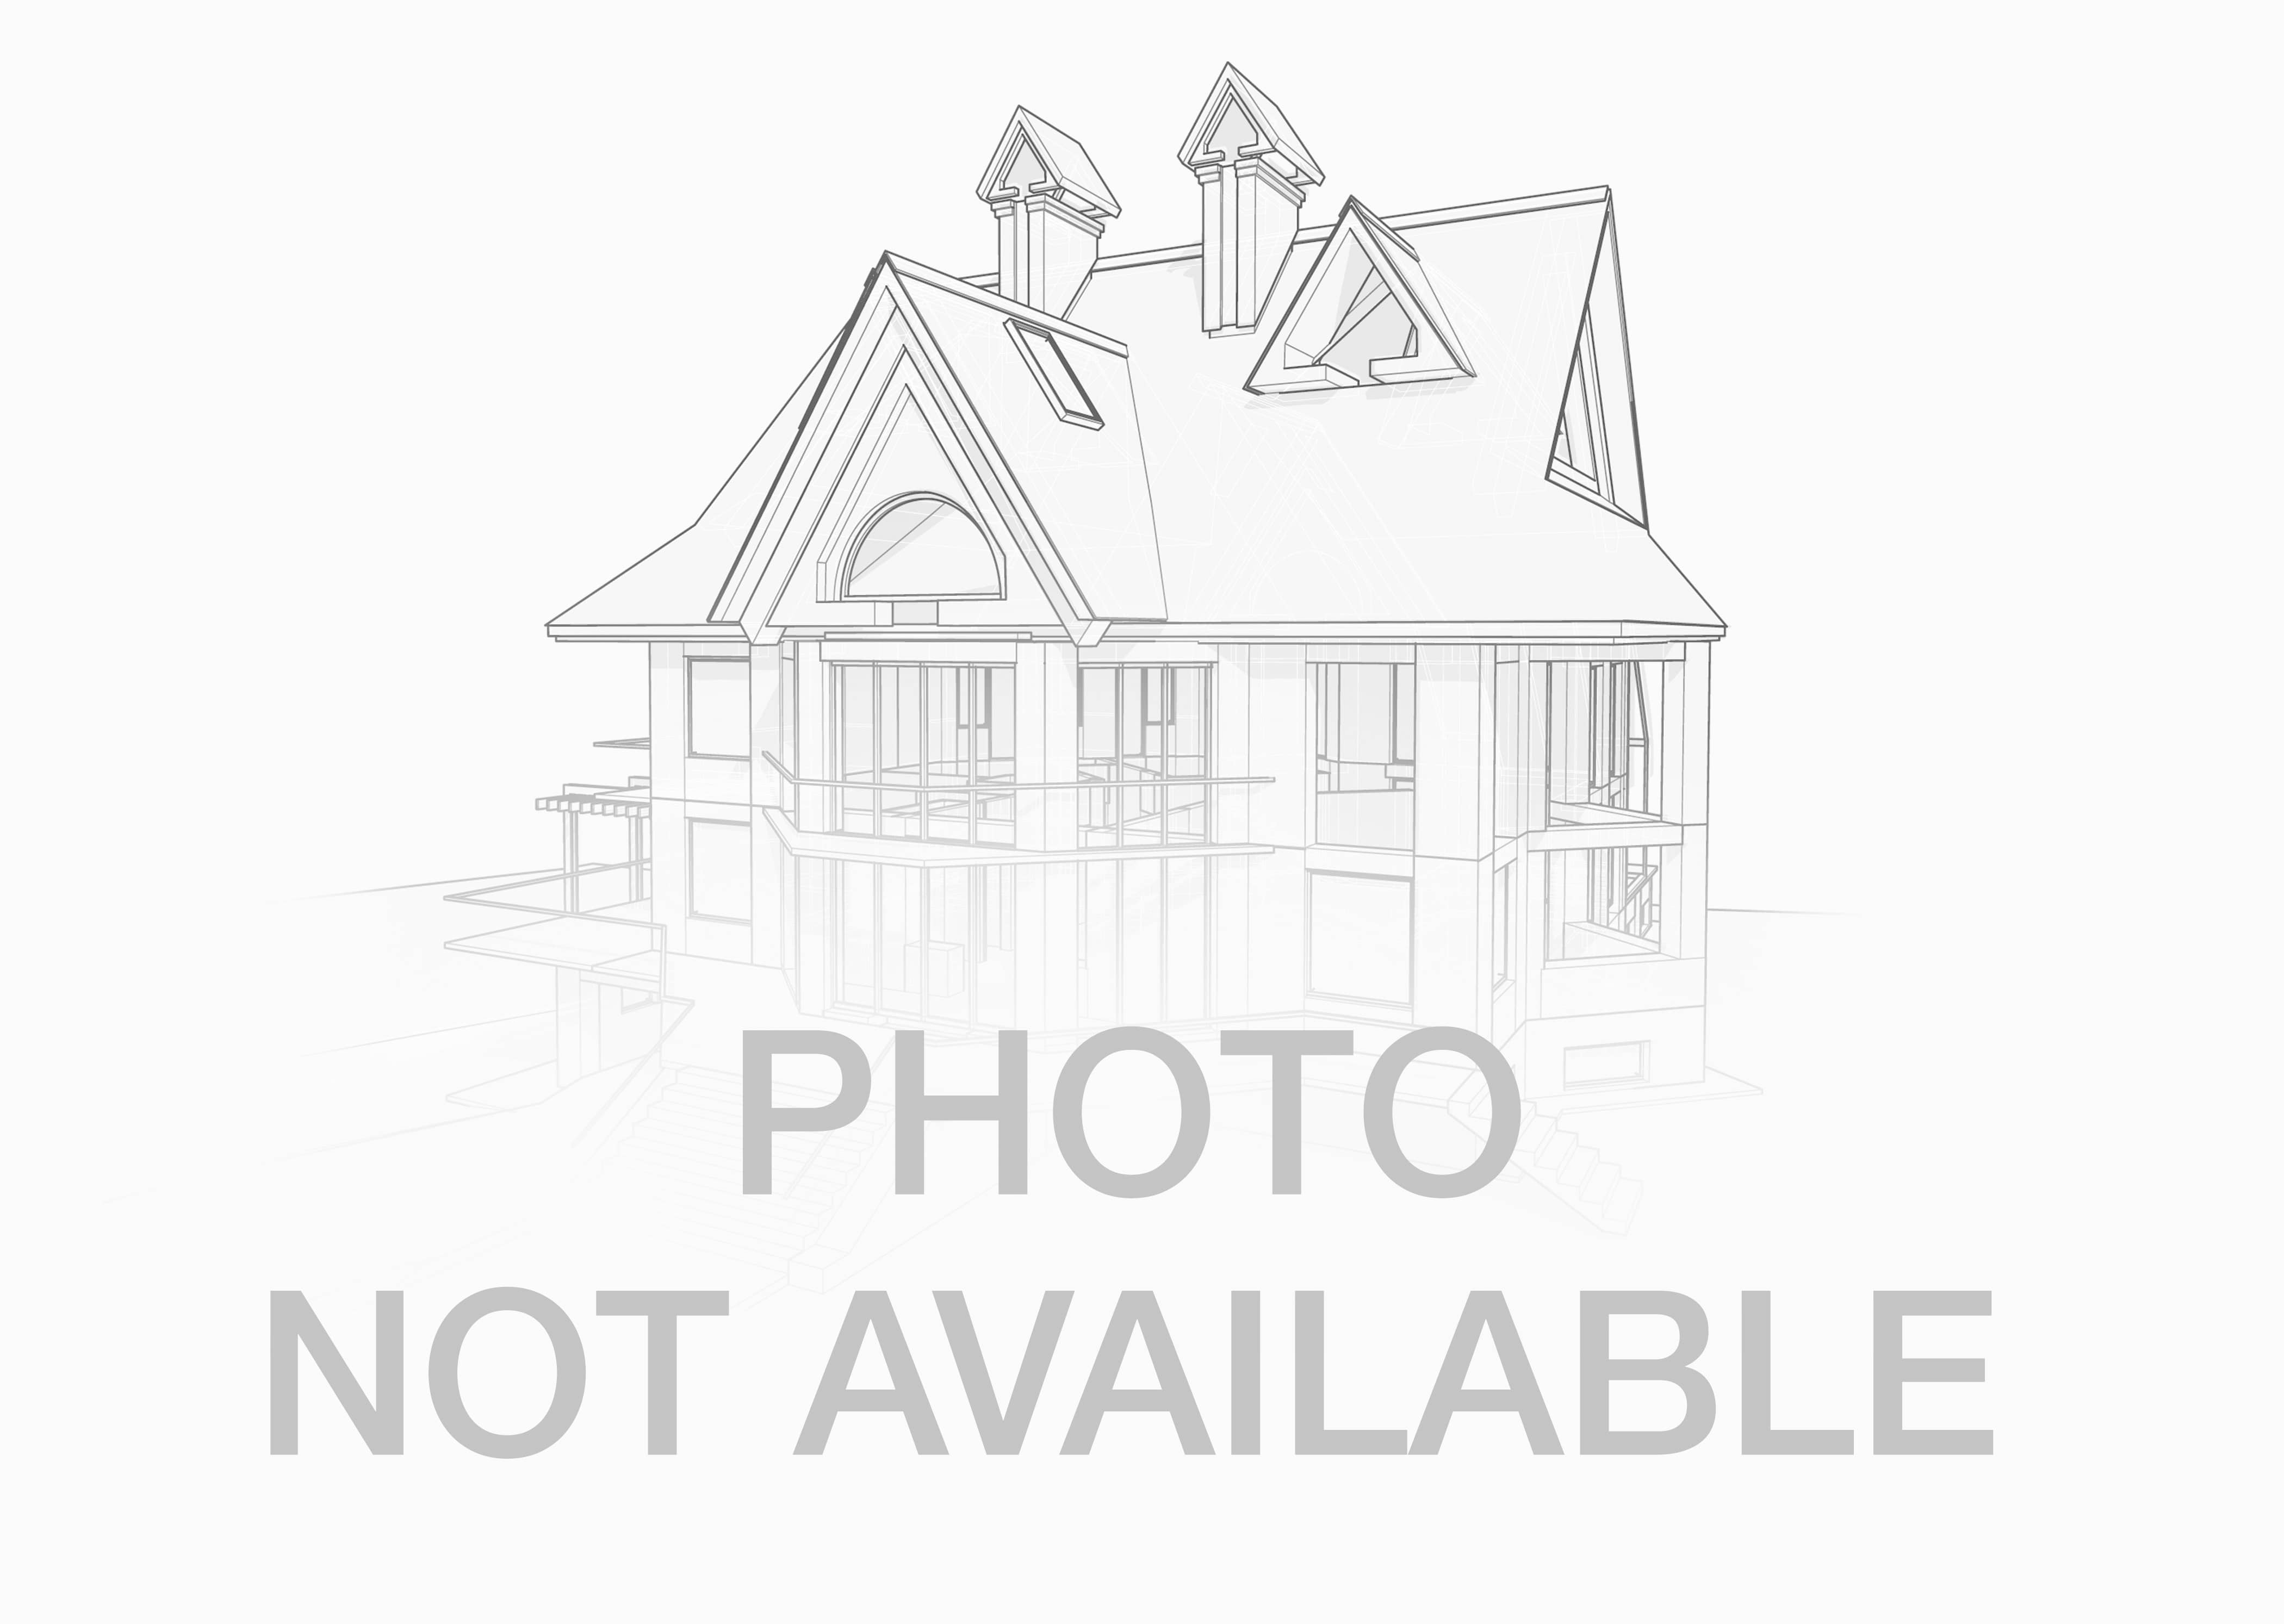 144 7th street nw valley city nd 58072 for Nd home builders